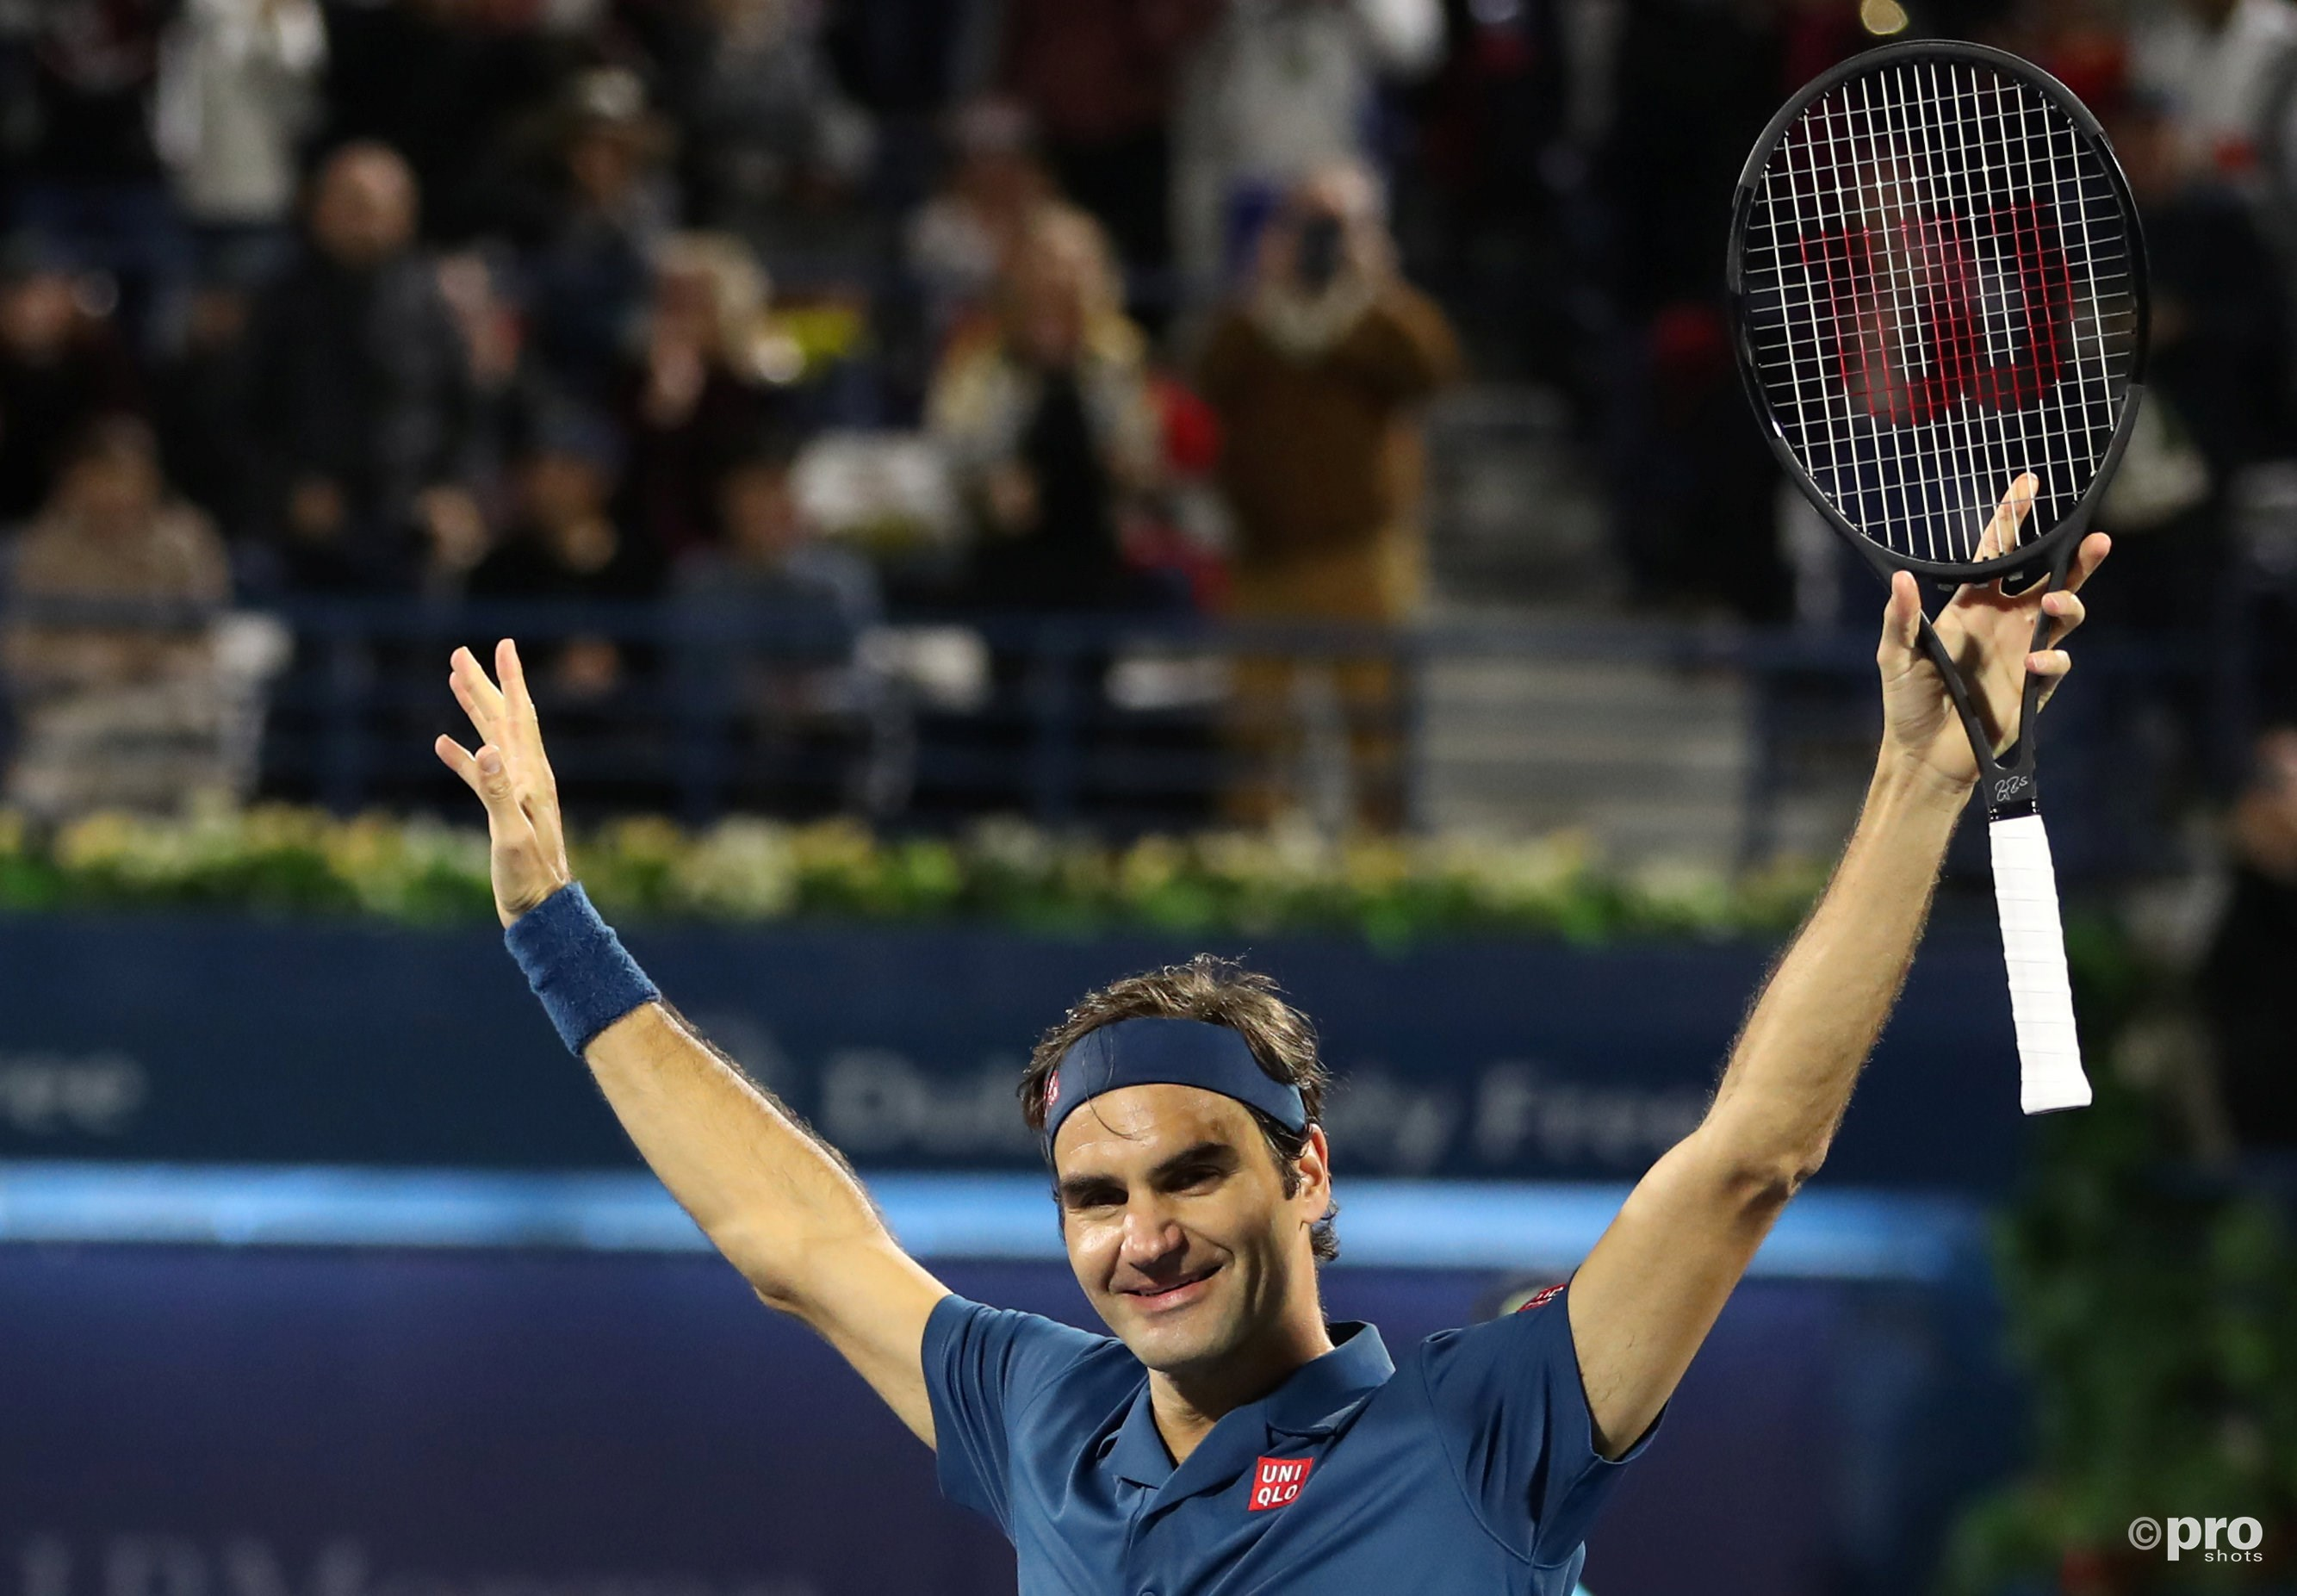 100ste toernooizege voor Federer na toernooiwinst in Dubai (Pro Shots / Action Images )